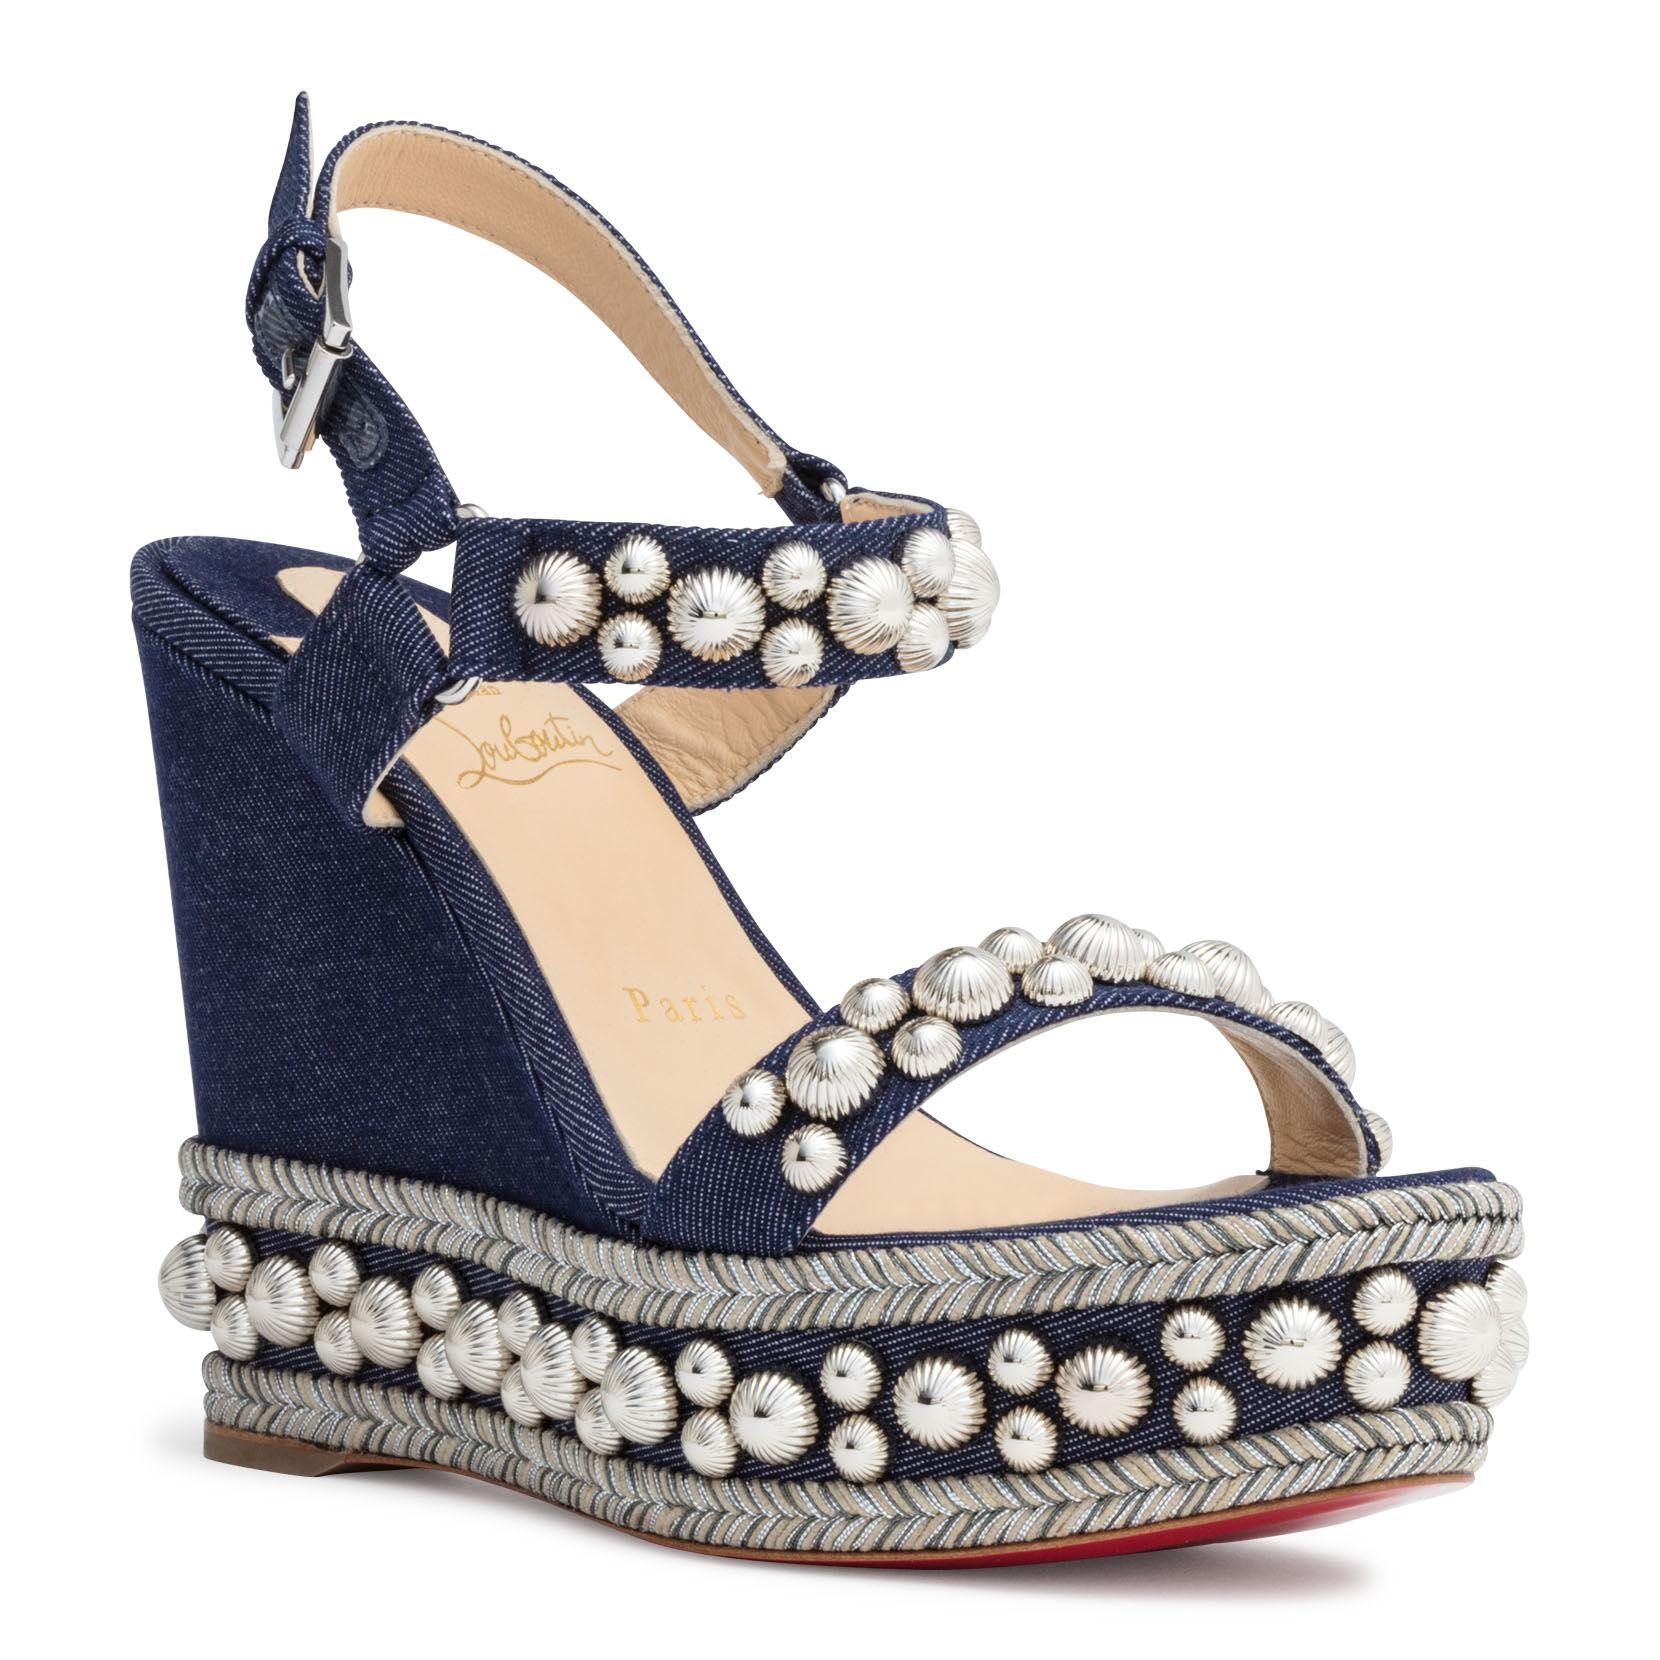 6f05e9fa6a6 Christian Louboutin Rondaclou 120 Blue Denim Wedge Sandals in Blue ...